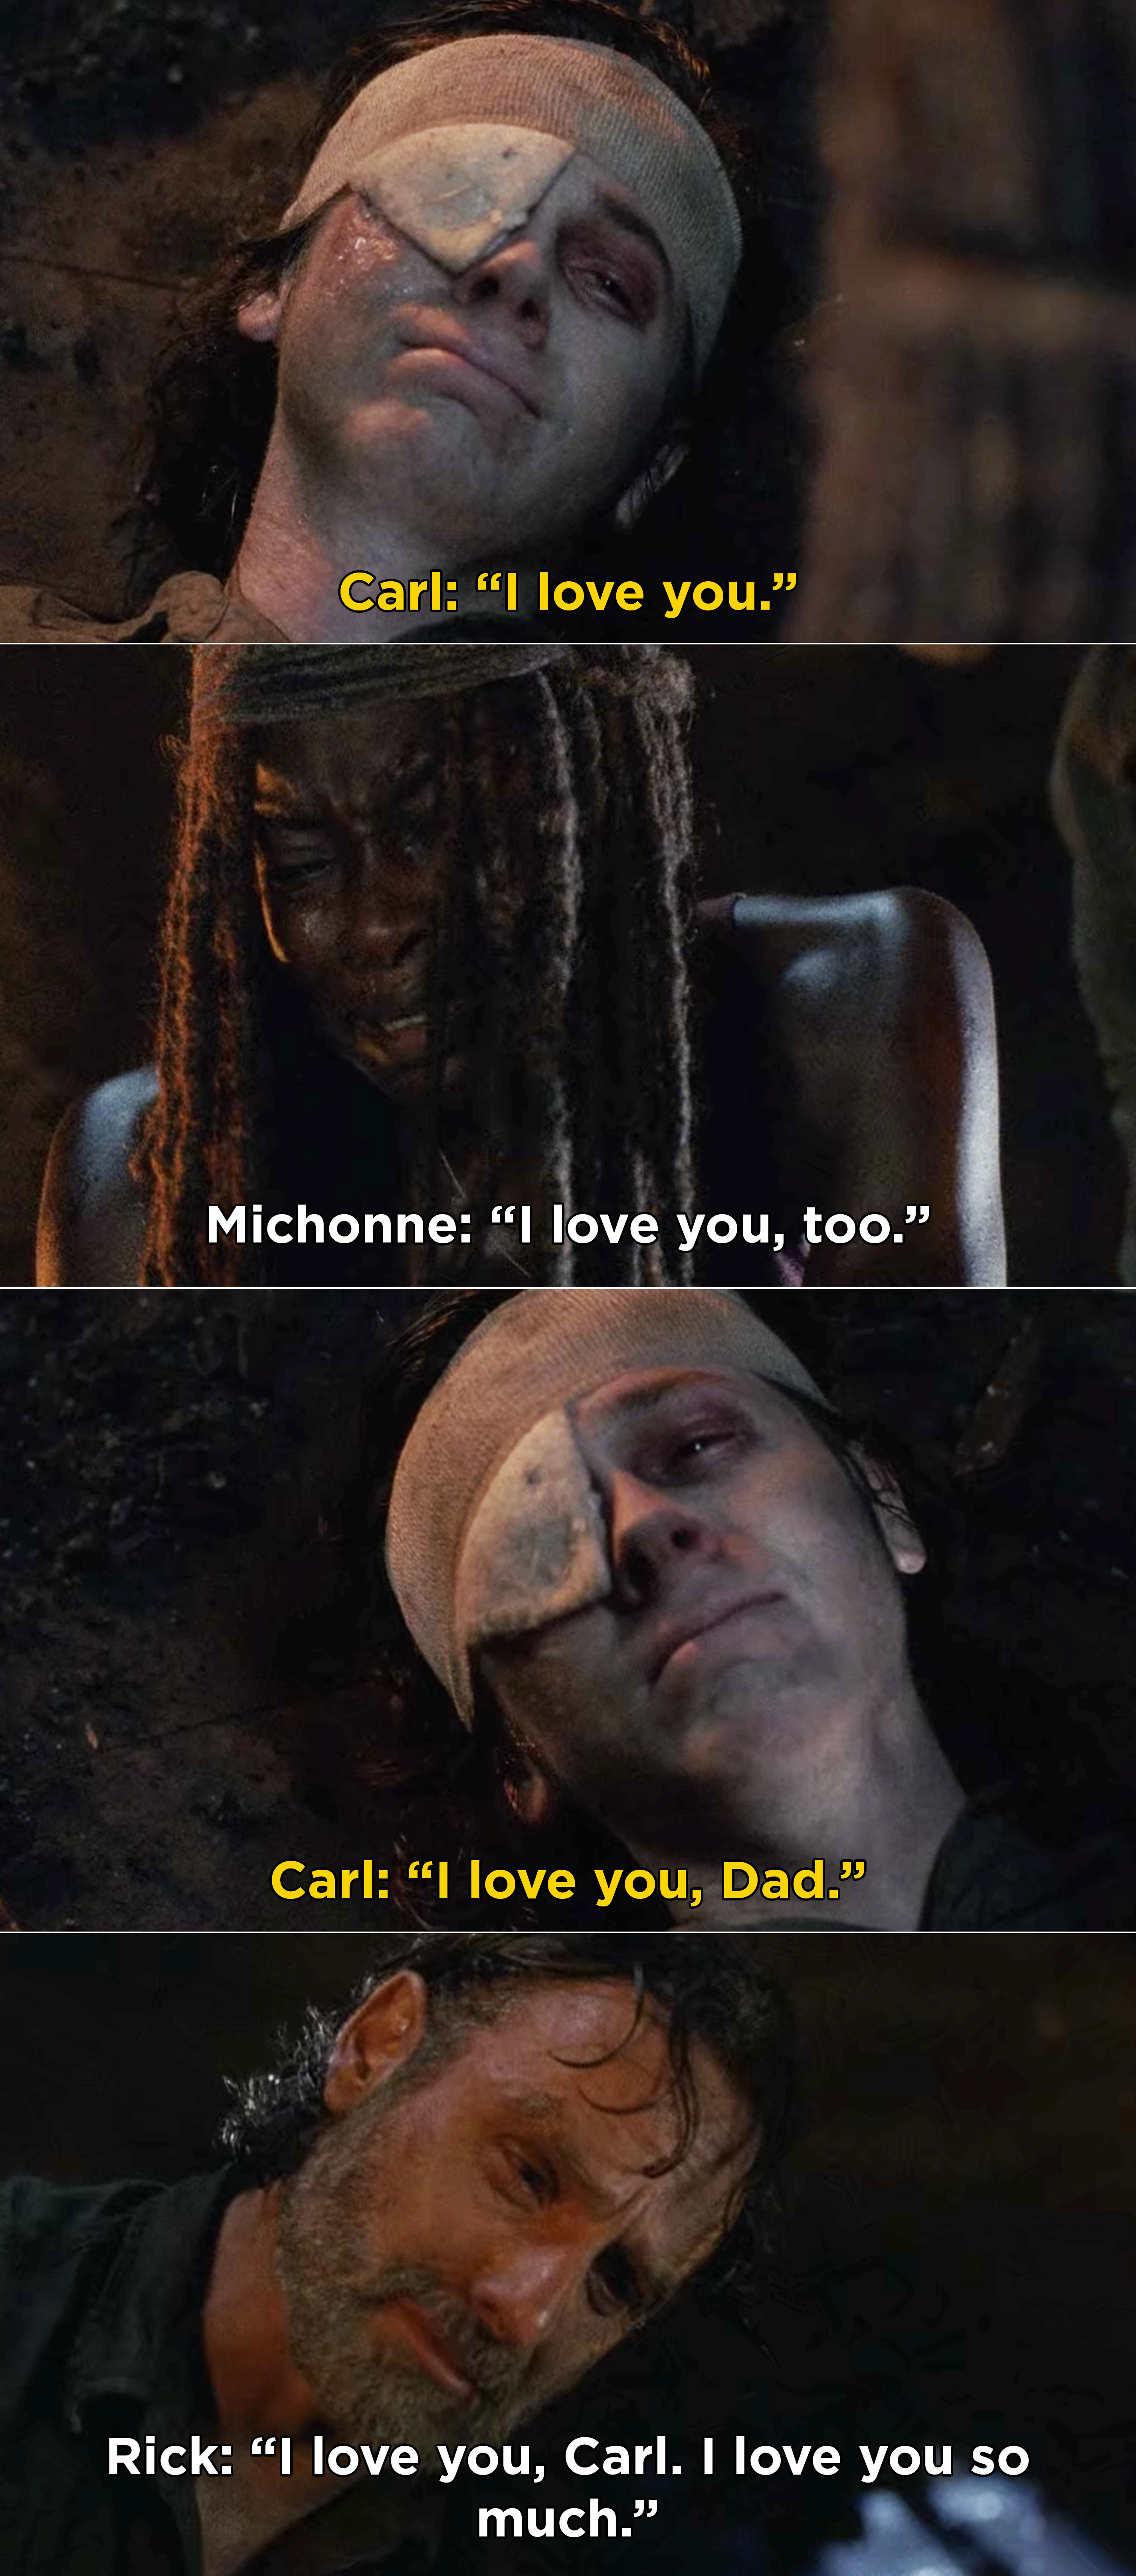 """Carl, Michonne, and Rick saying """"I love you"""" to each other"""